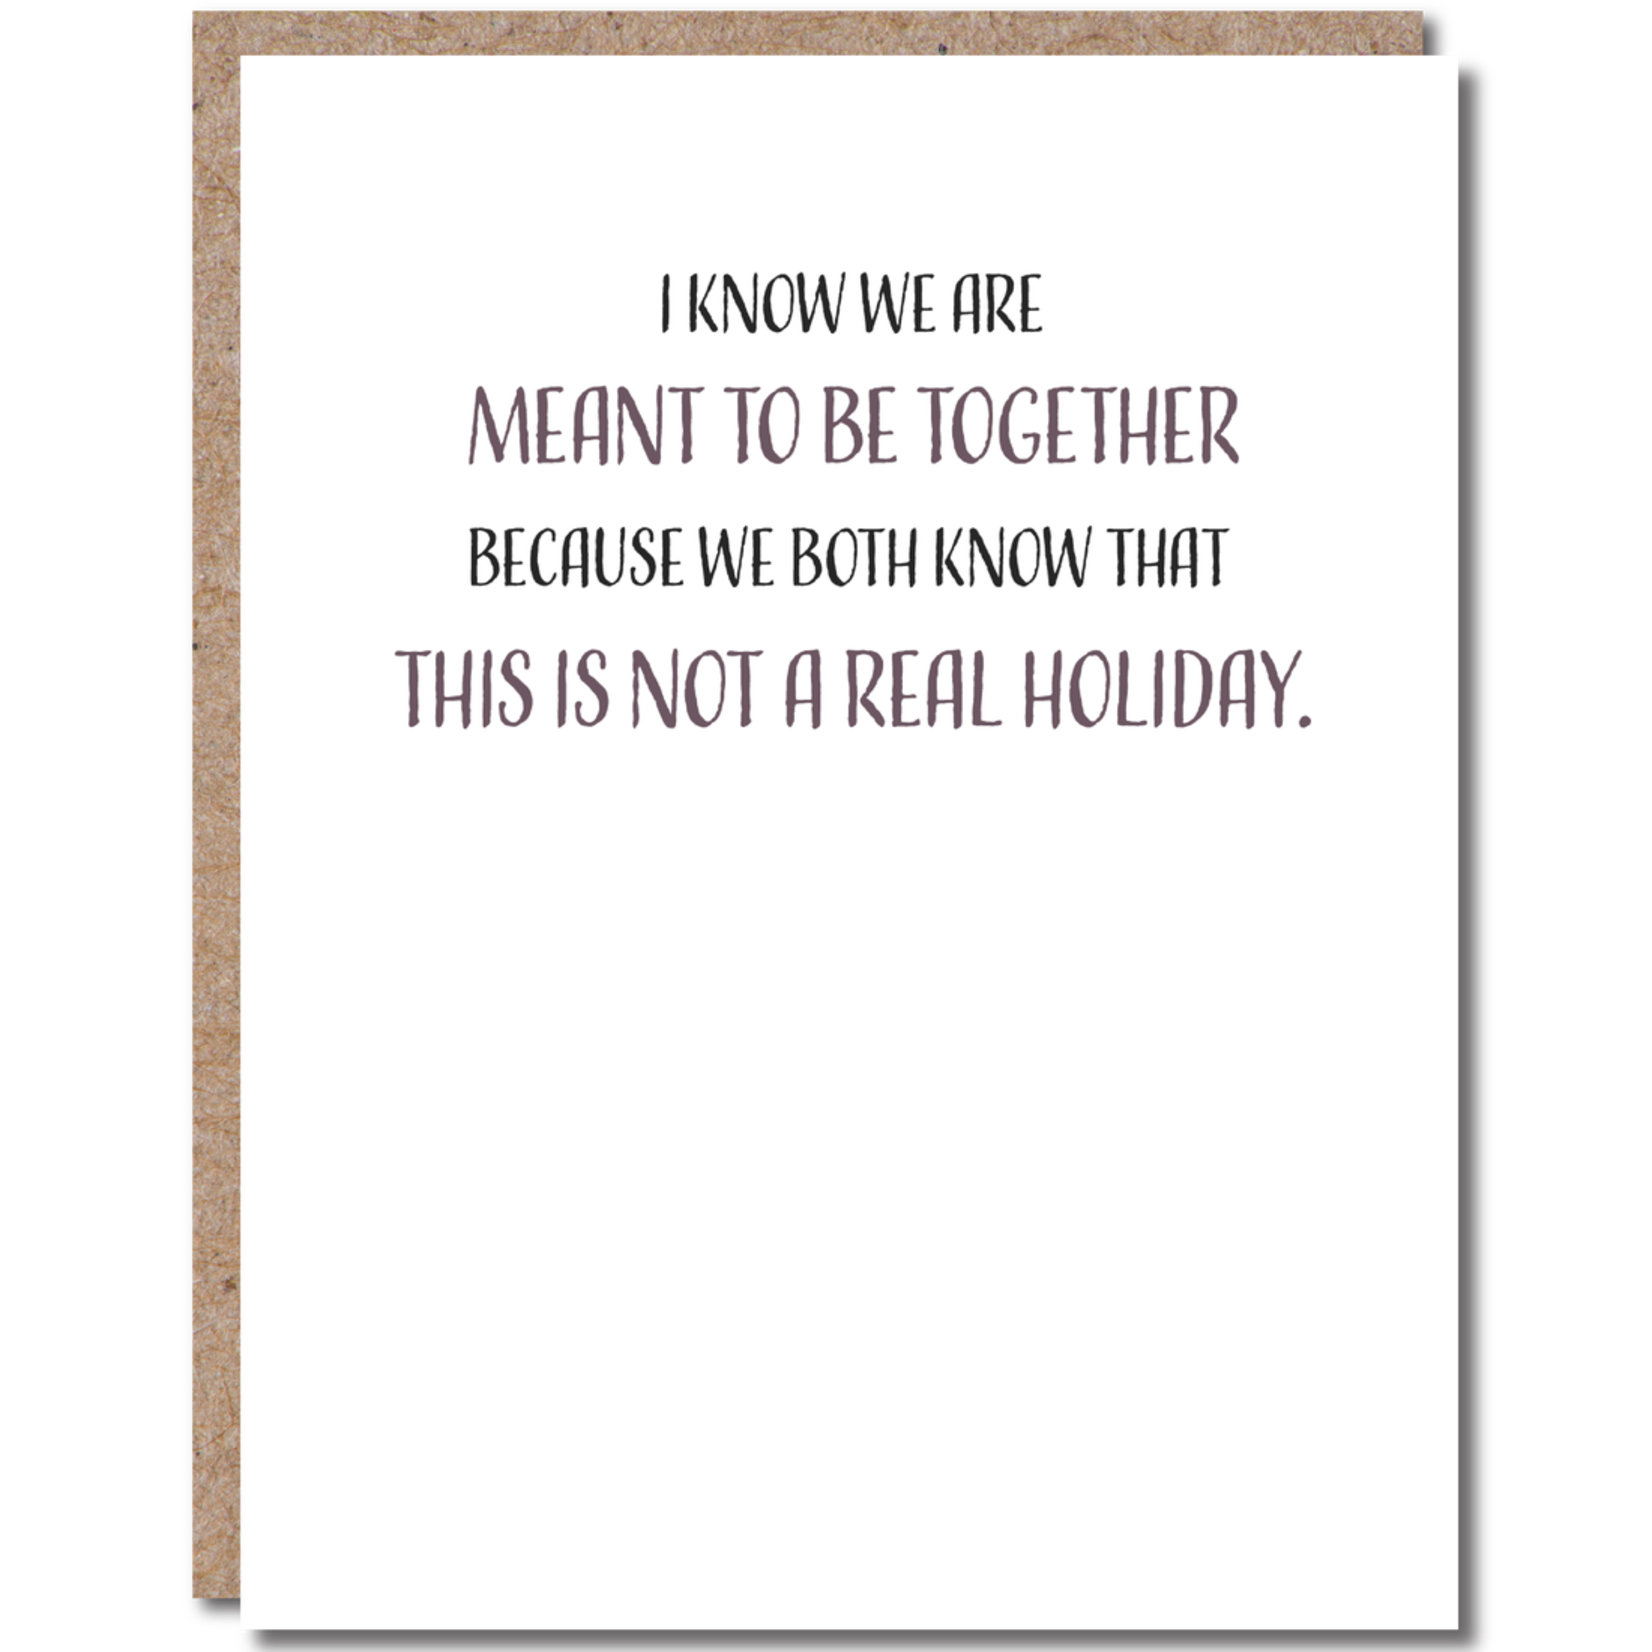 Bad Annie's Card - We Are Meant To Be Together Because We know This Is Not A Real Holiday